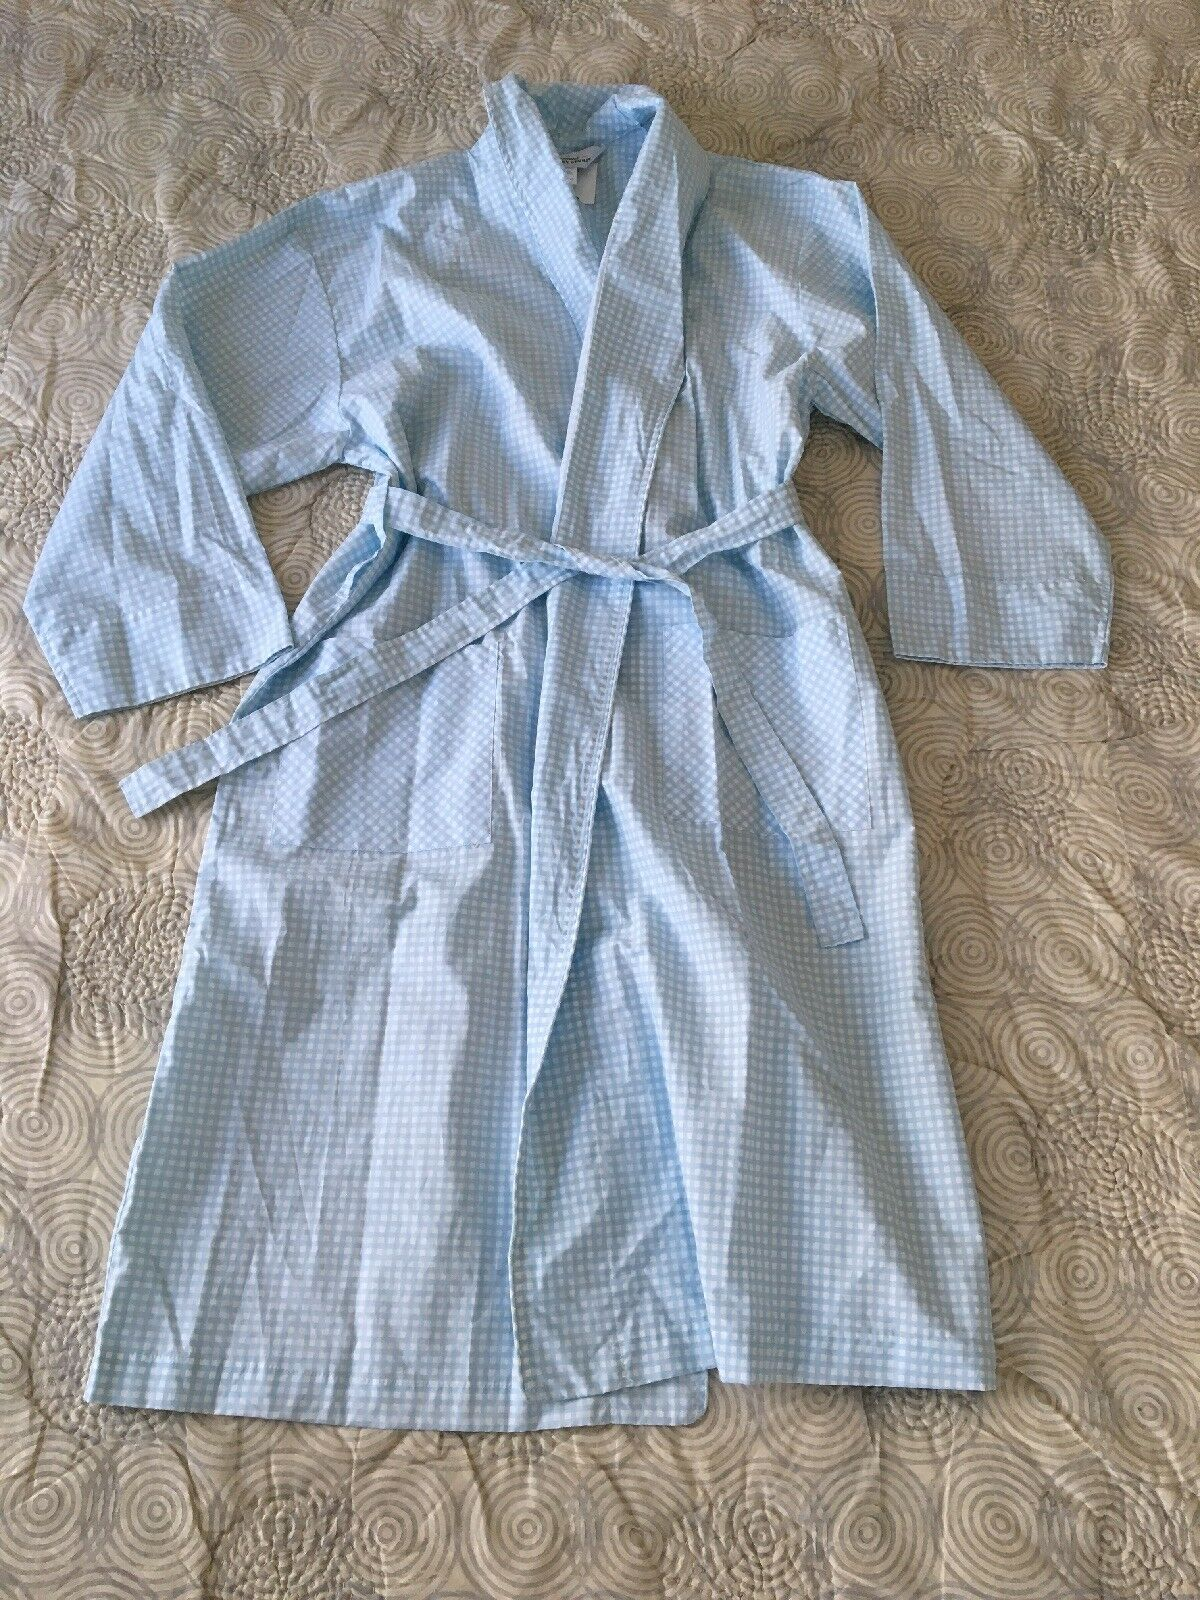 NEW The Vermont Country Store Portuguese Cotton Gingham Robe Mens Sz M